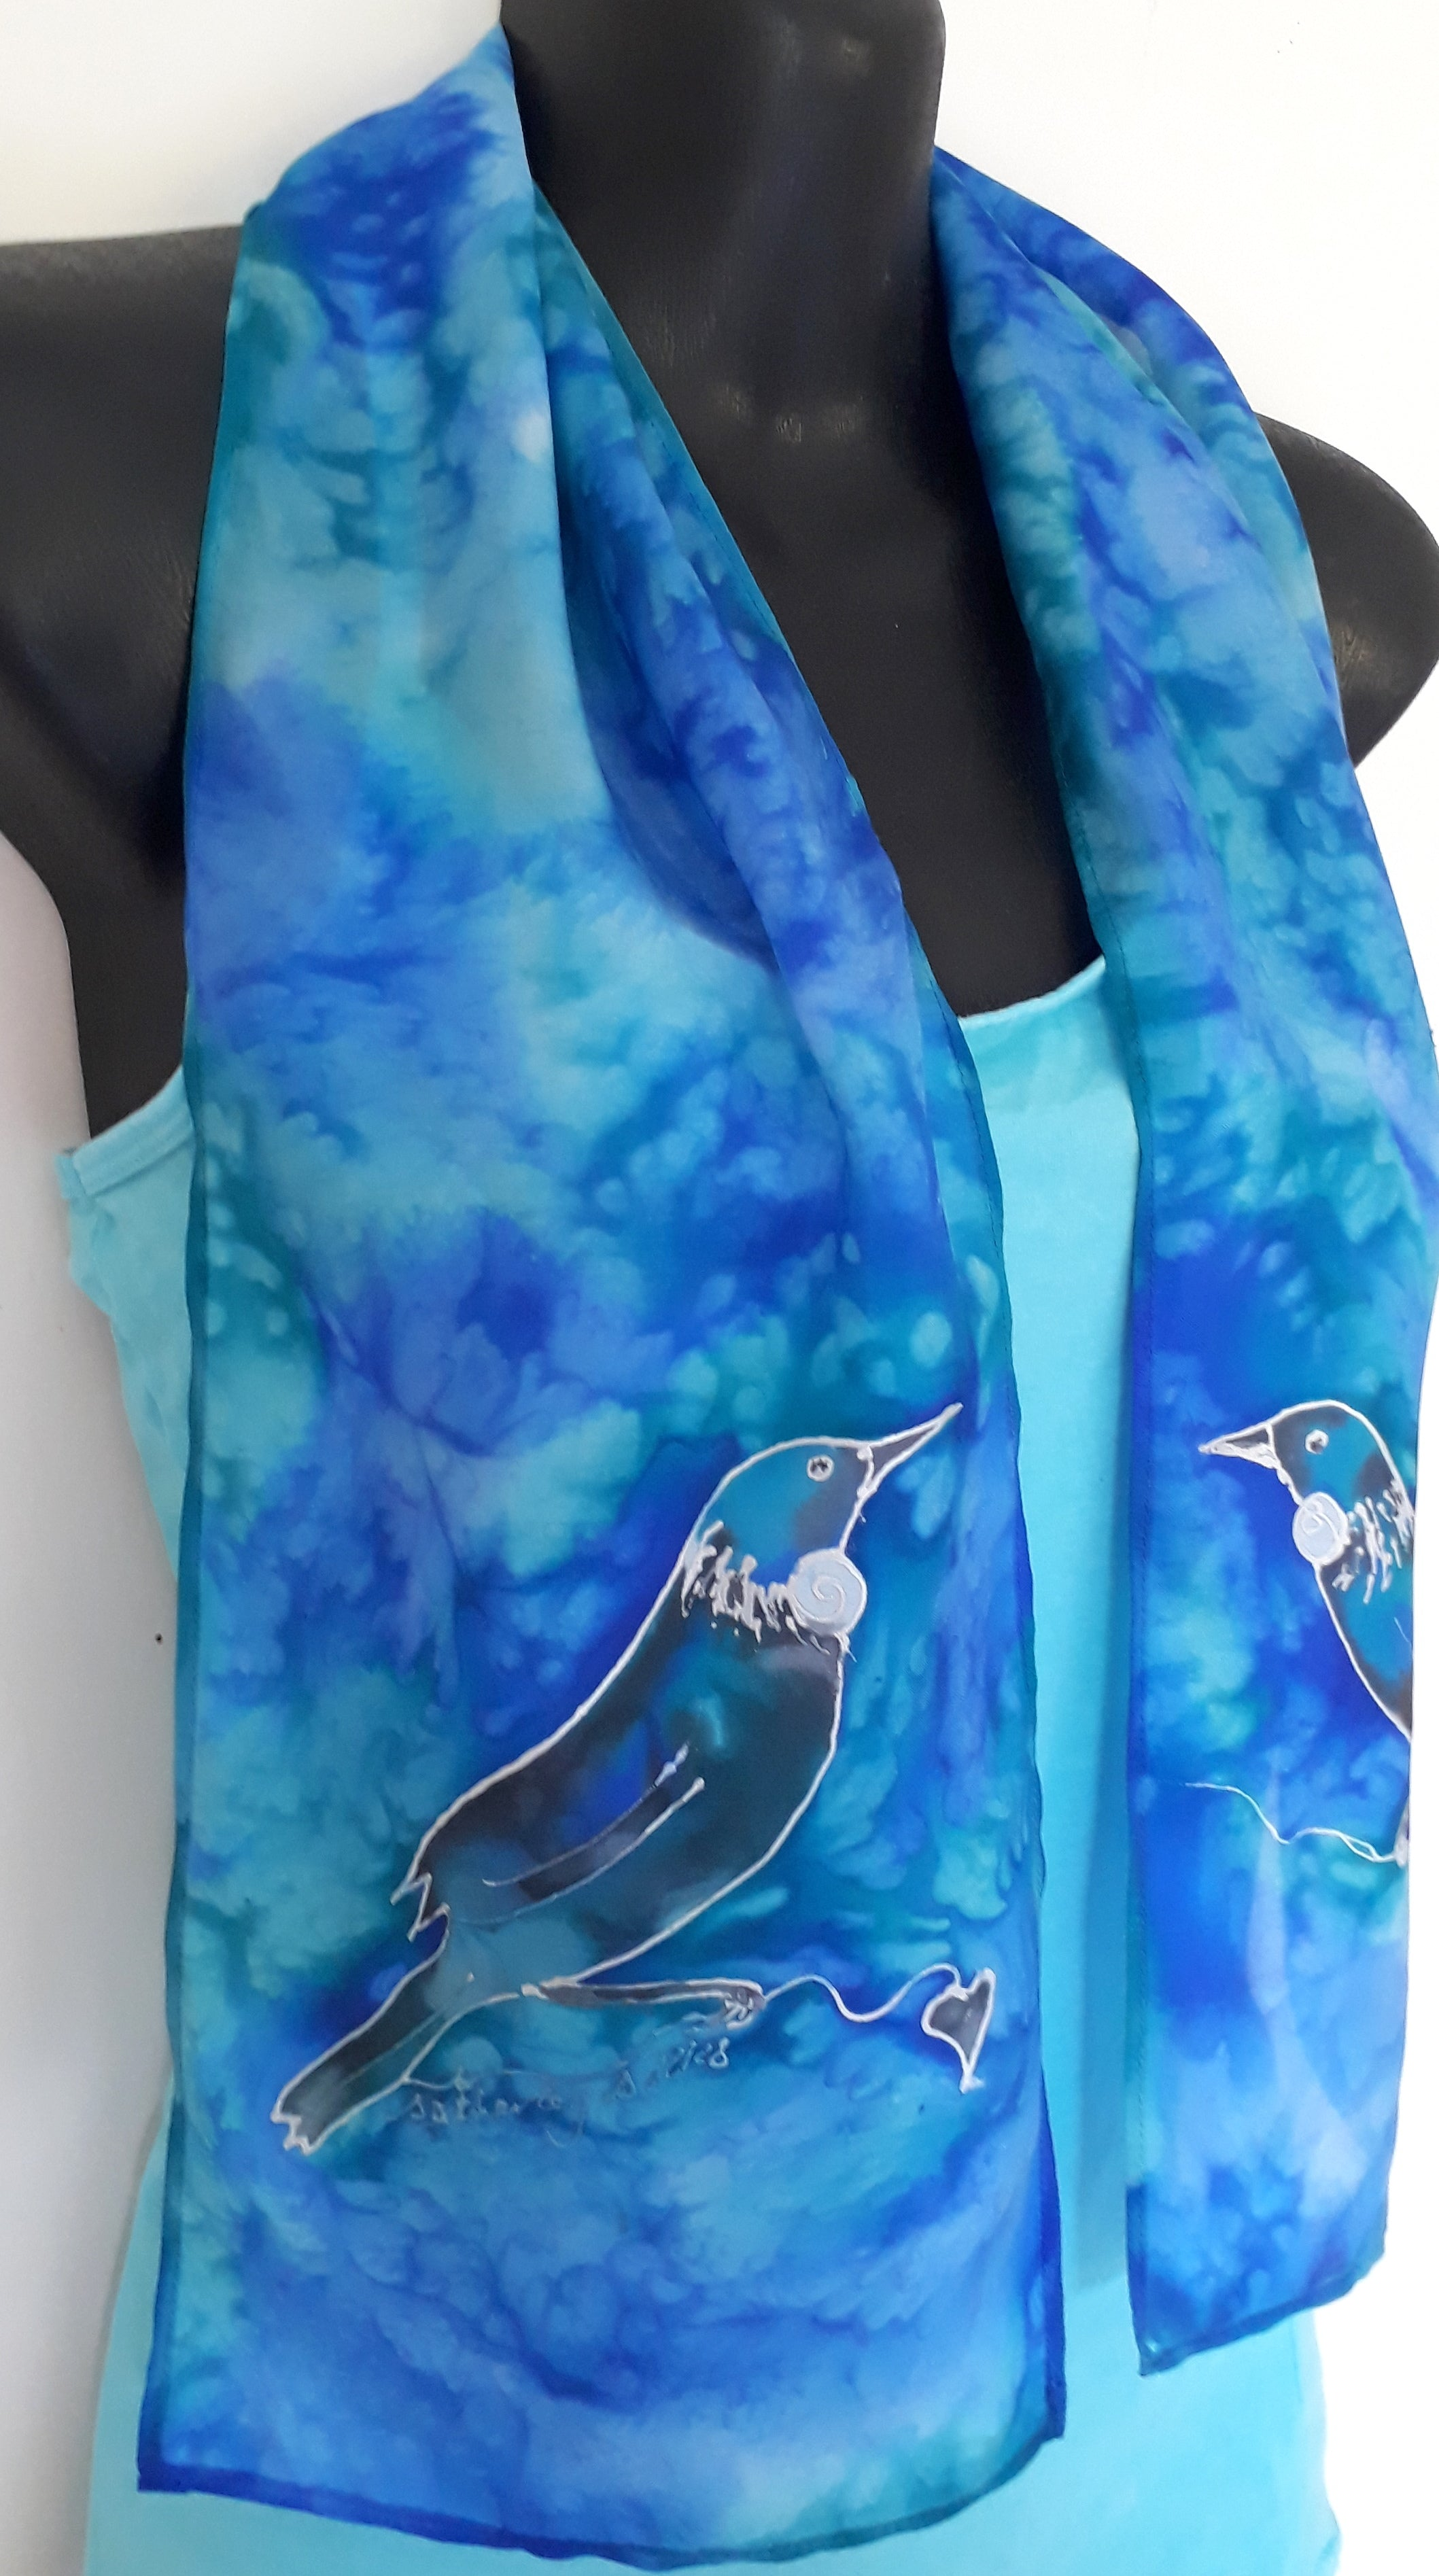 Tui NZ Bird Silk Scarf - Satherley Silks NZ